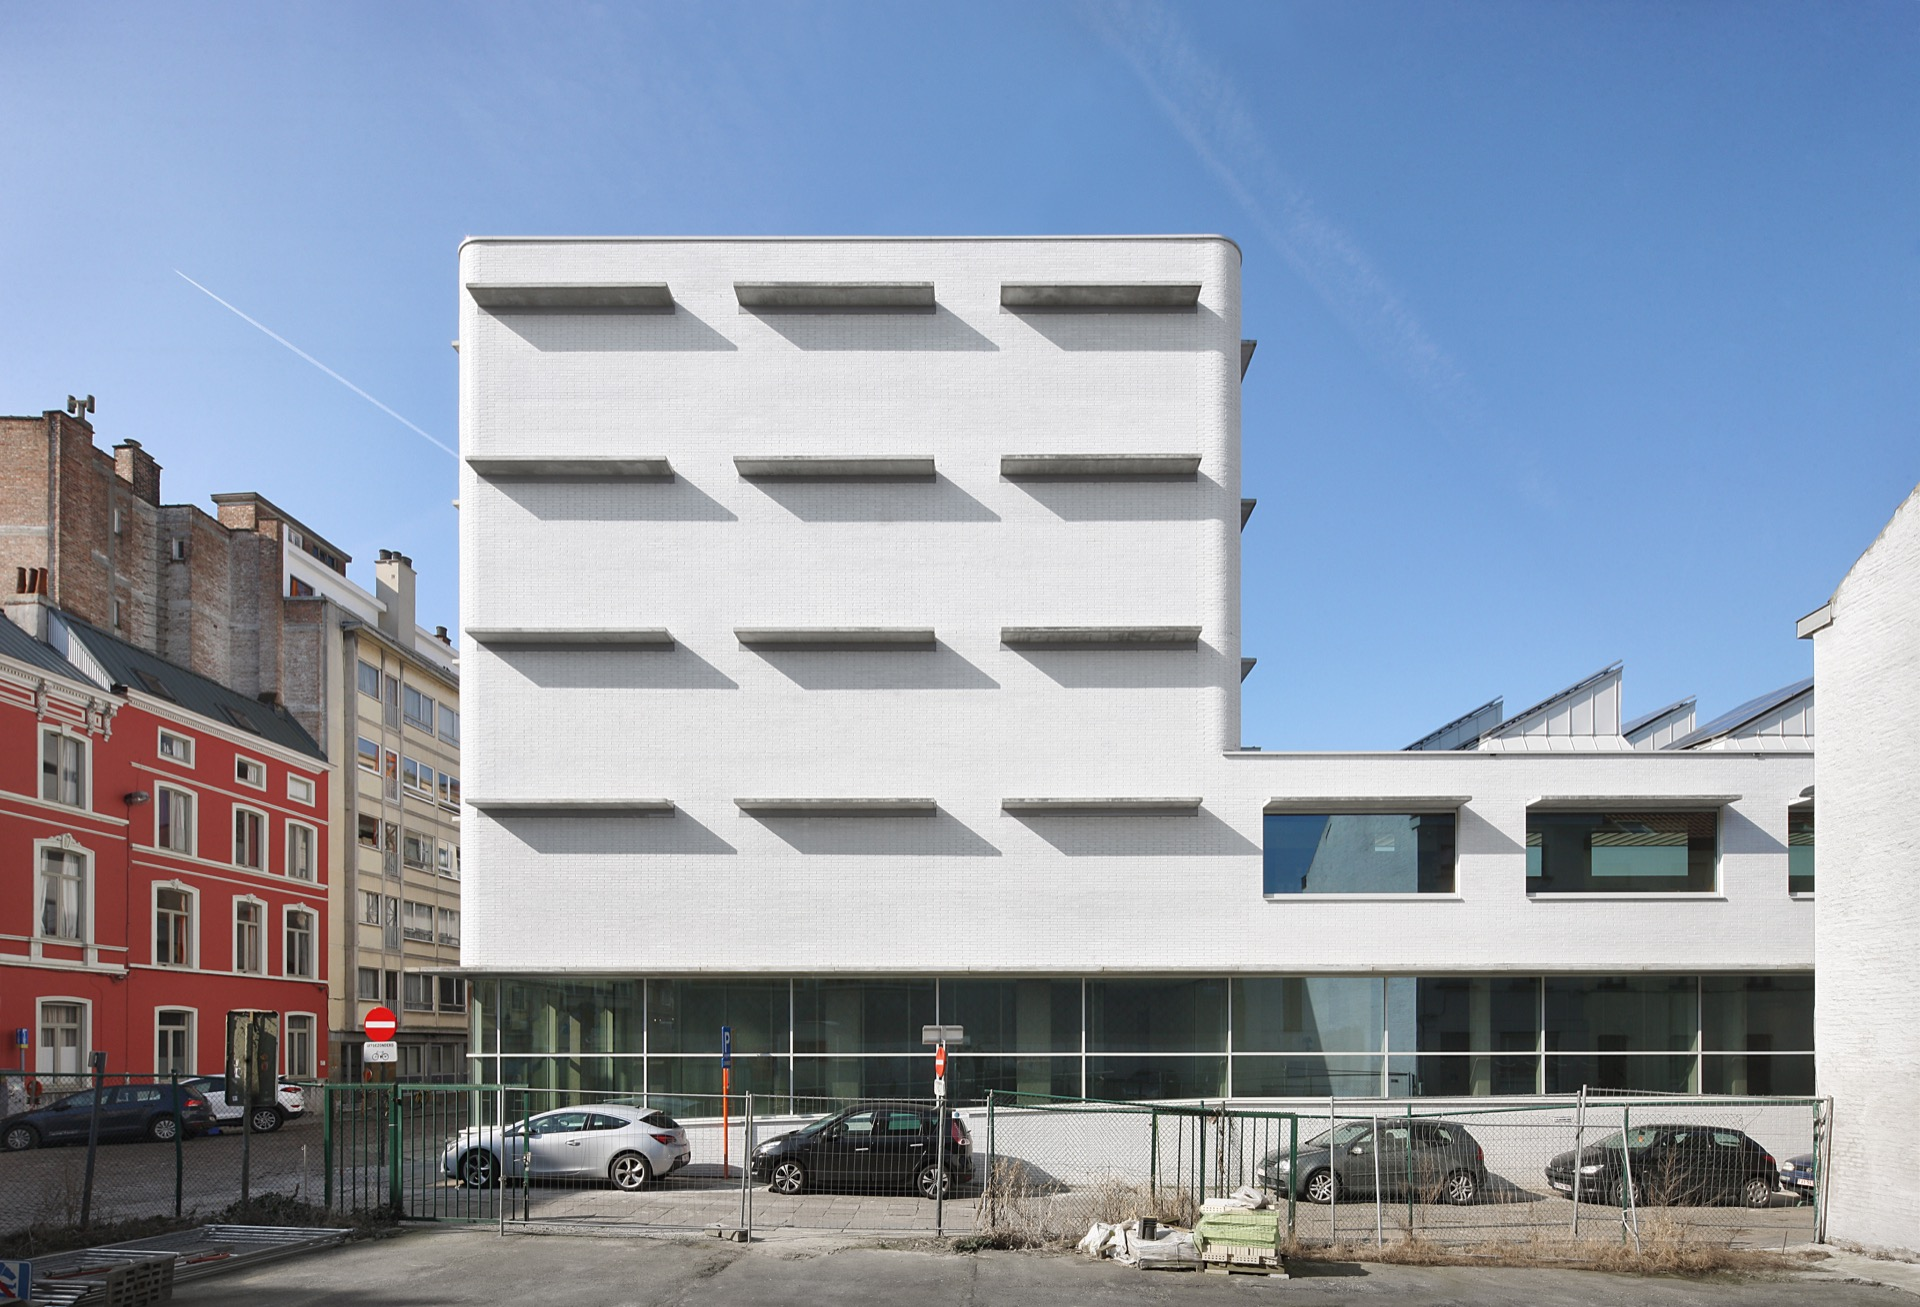 Rijksarchief Gent library building architecture design exterior view